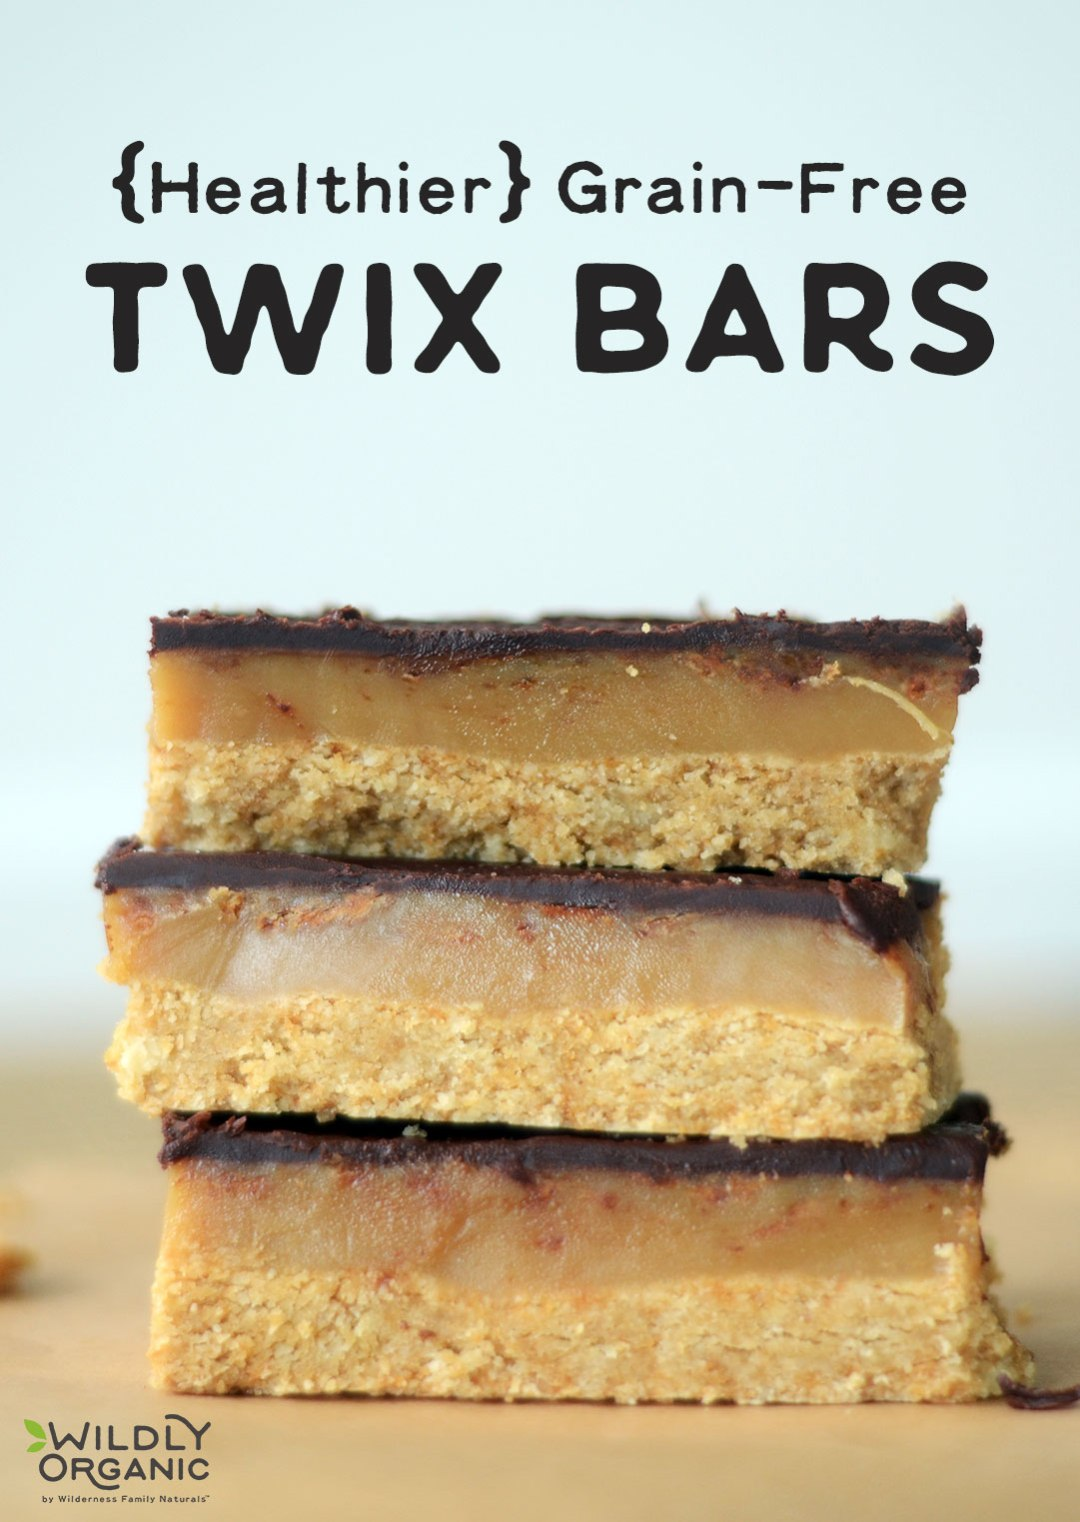 {Healthier} Grain-Free Twix Bars | Who can deny the delicious combination of chocolate, caramel, and cookie crust? It's mouth-watering! Satisfy the craving for candy bars with these healthier Grain-Free Twix Bars! They're free of refined sugar, too and have a dairy-free option! | WildlyOrganic.com